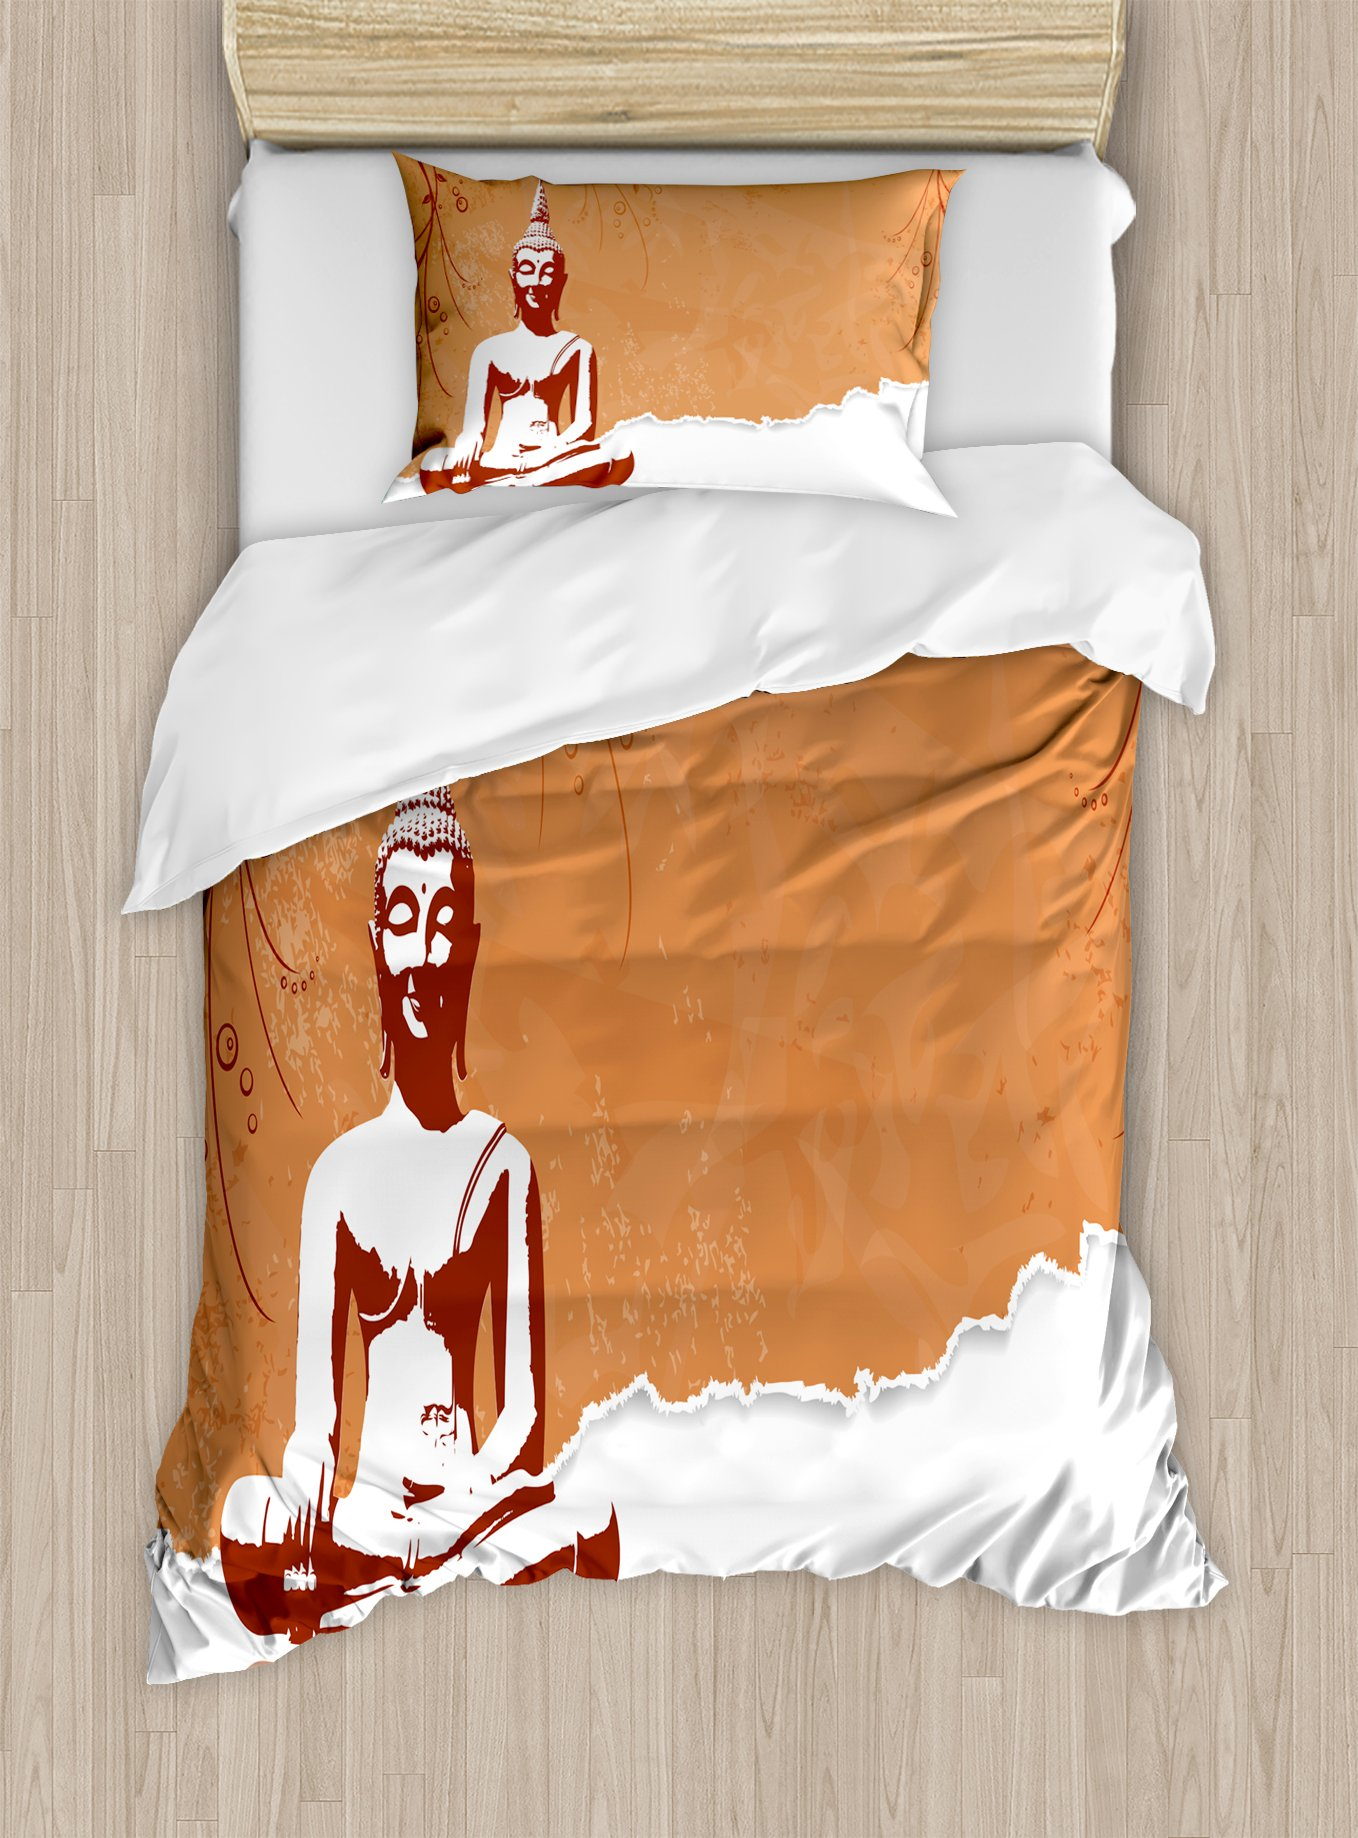 Ambesonne Thai Culture Duvet Cover Set Twin Size, Meditating Statue with Floral Lotus Details Spiritual Concept Image, Decorative 2 Piece Bedding Set with 1 Pillow Sham, Salmon White Ruby